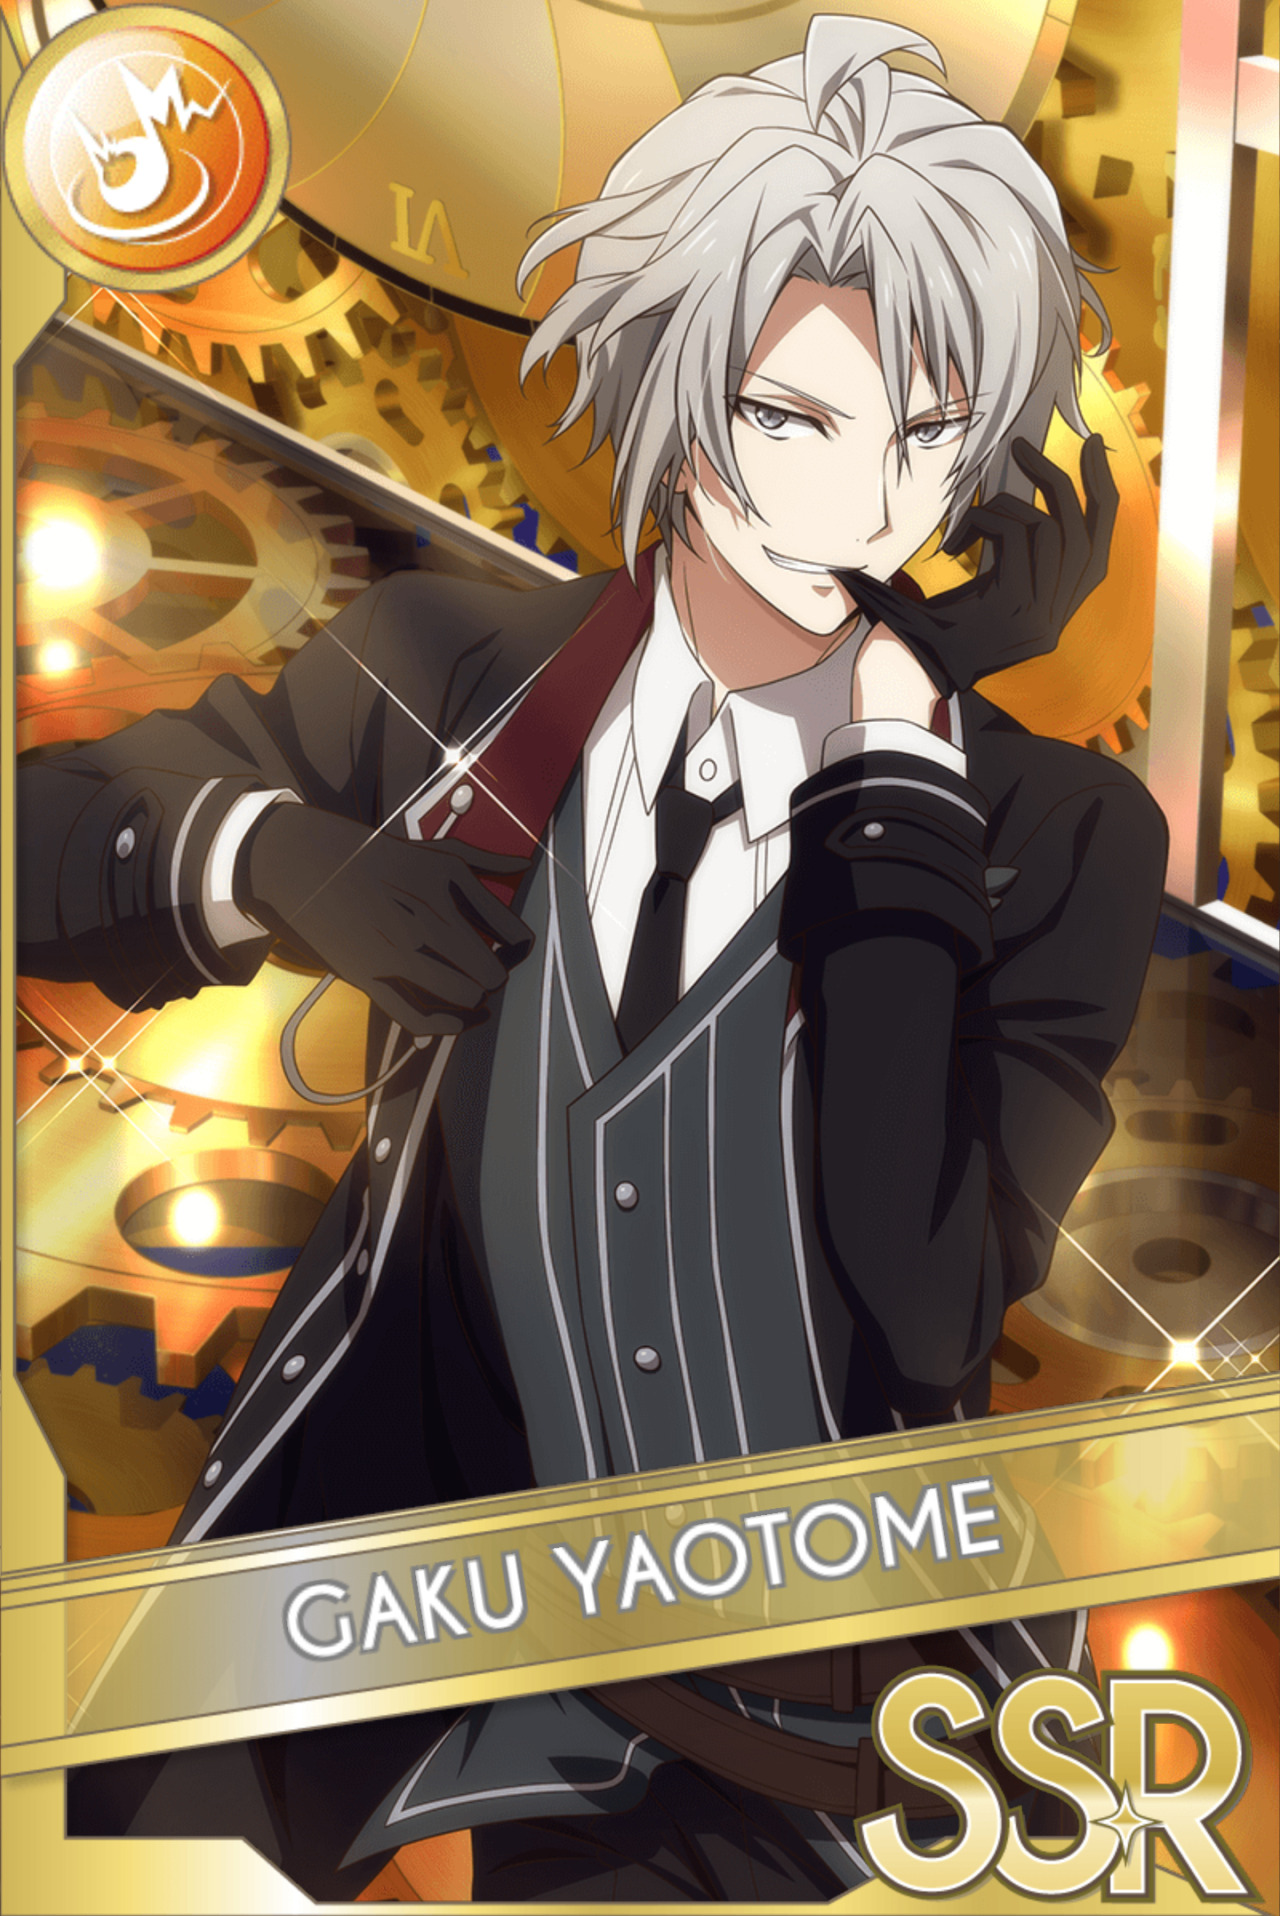 Gaku Yaotome (Last Dimension)